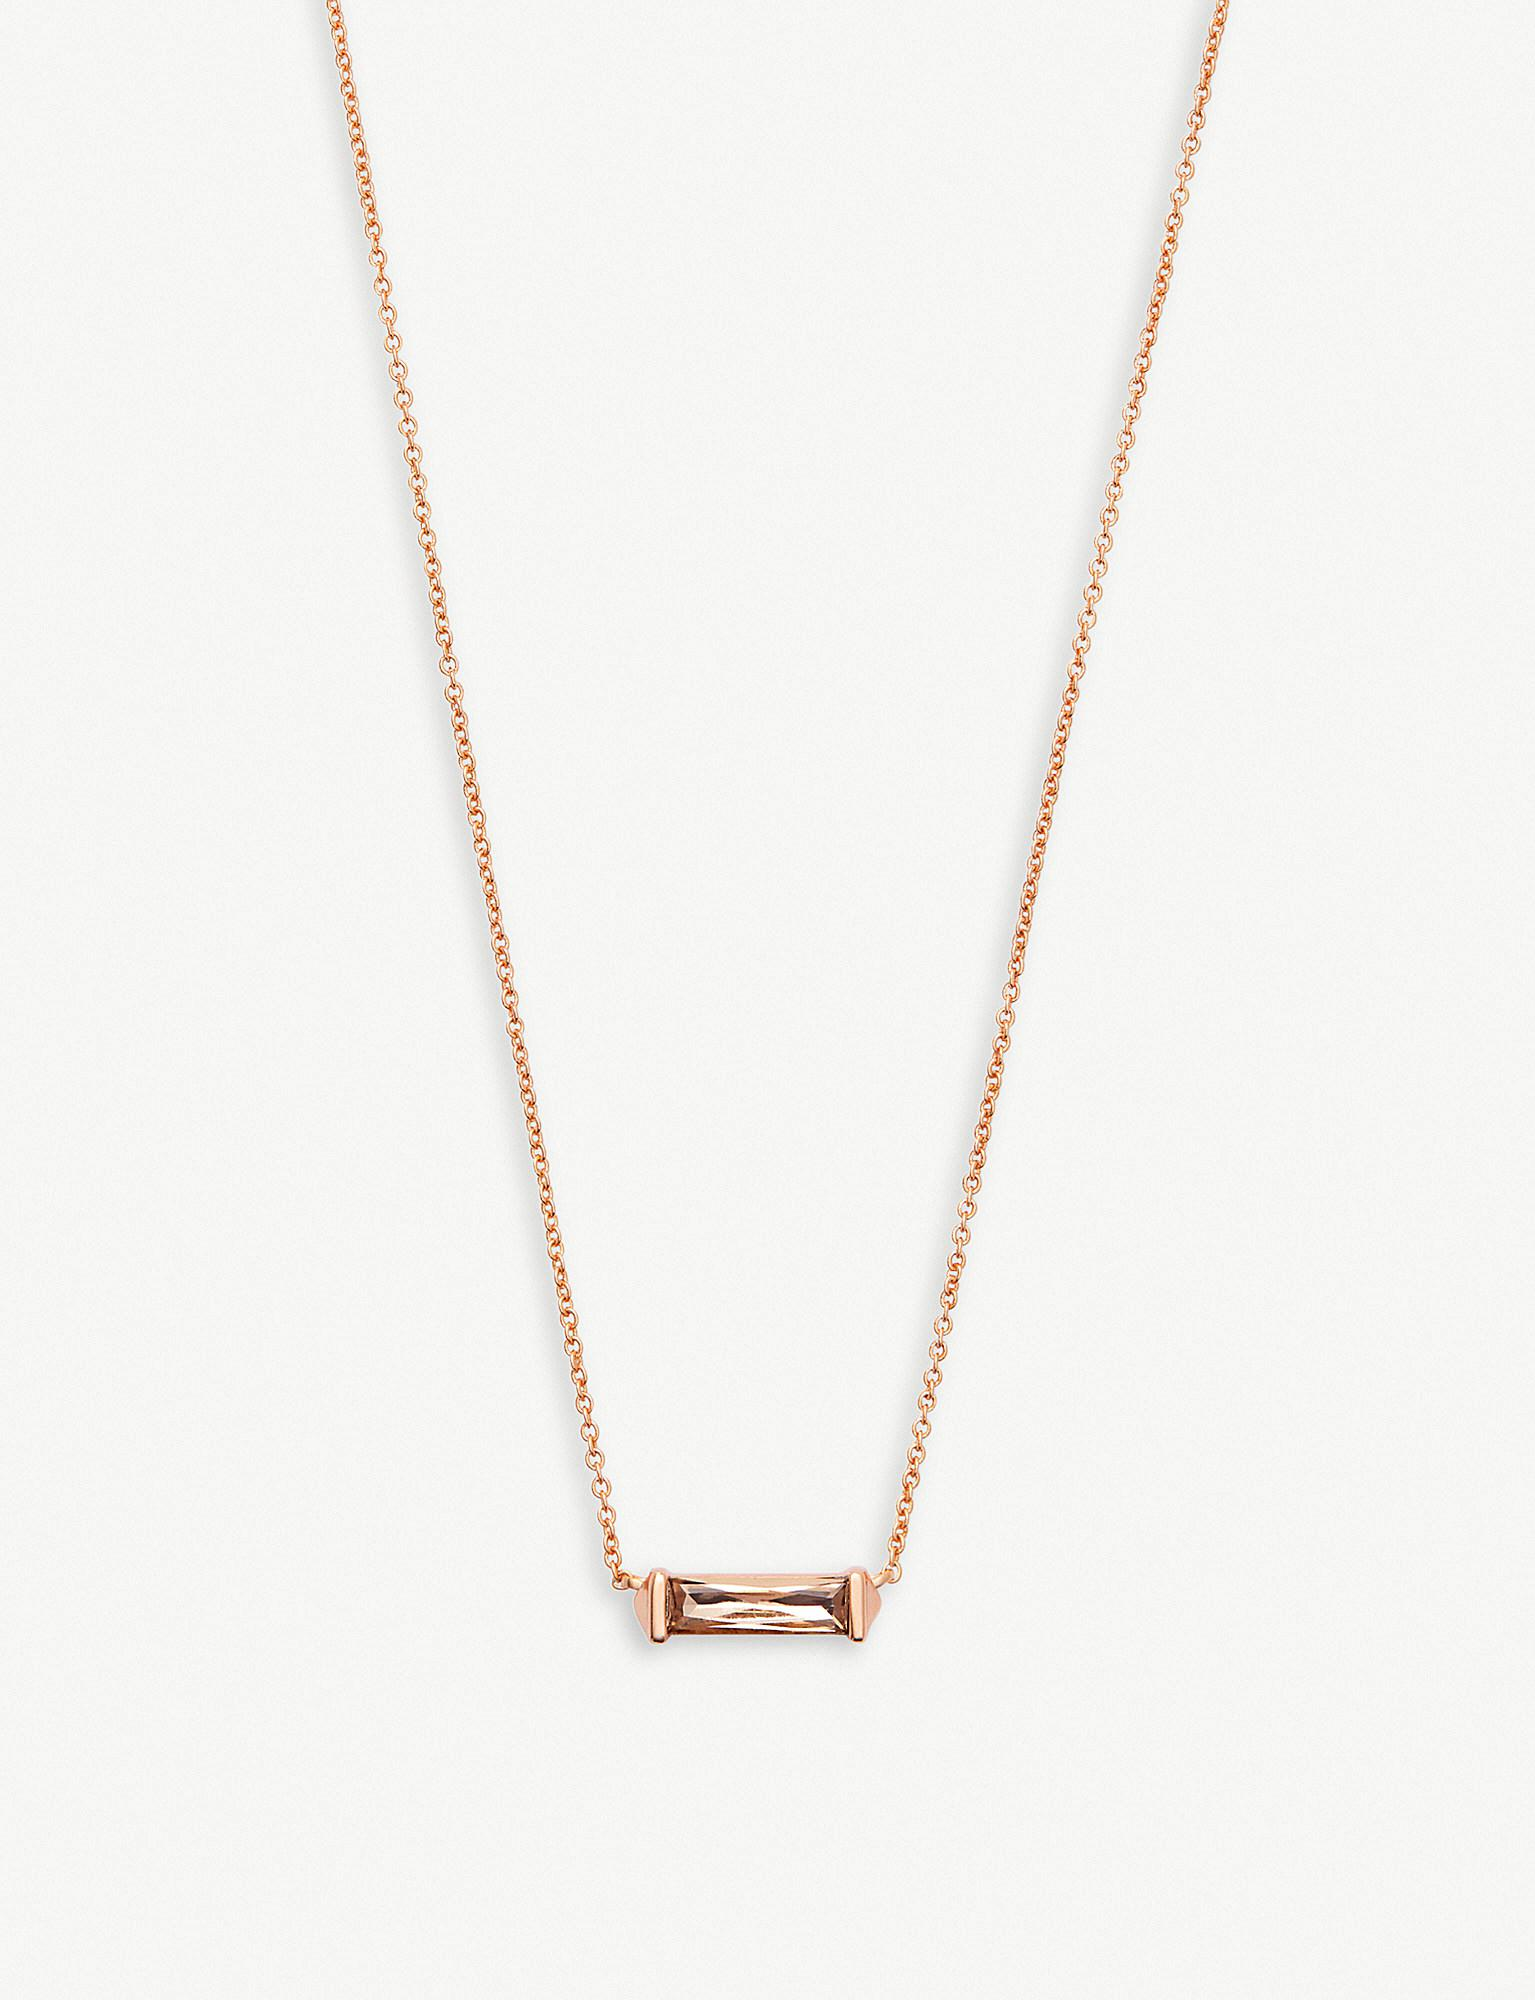 cab73df15 Lyst - Kendra Scott Rufus 14ct Rose Gold-plated And Crystal Bar ...